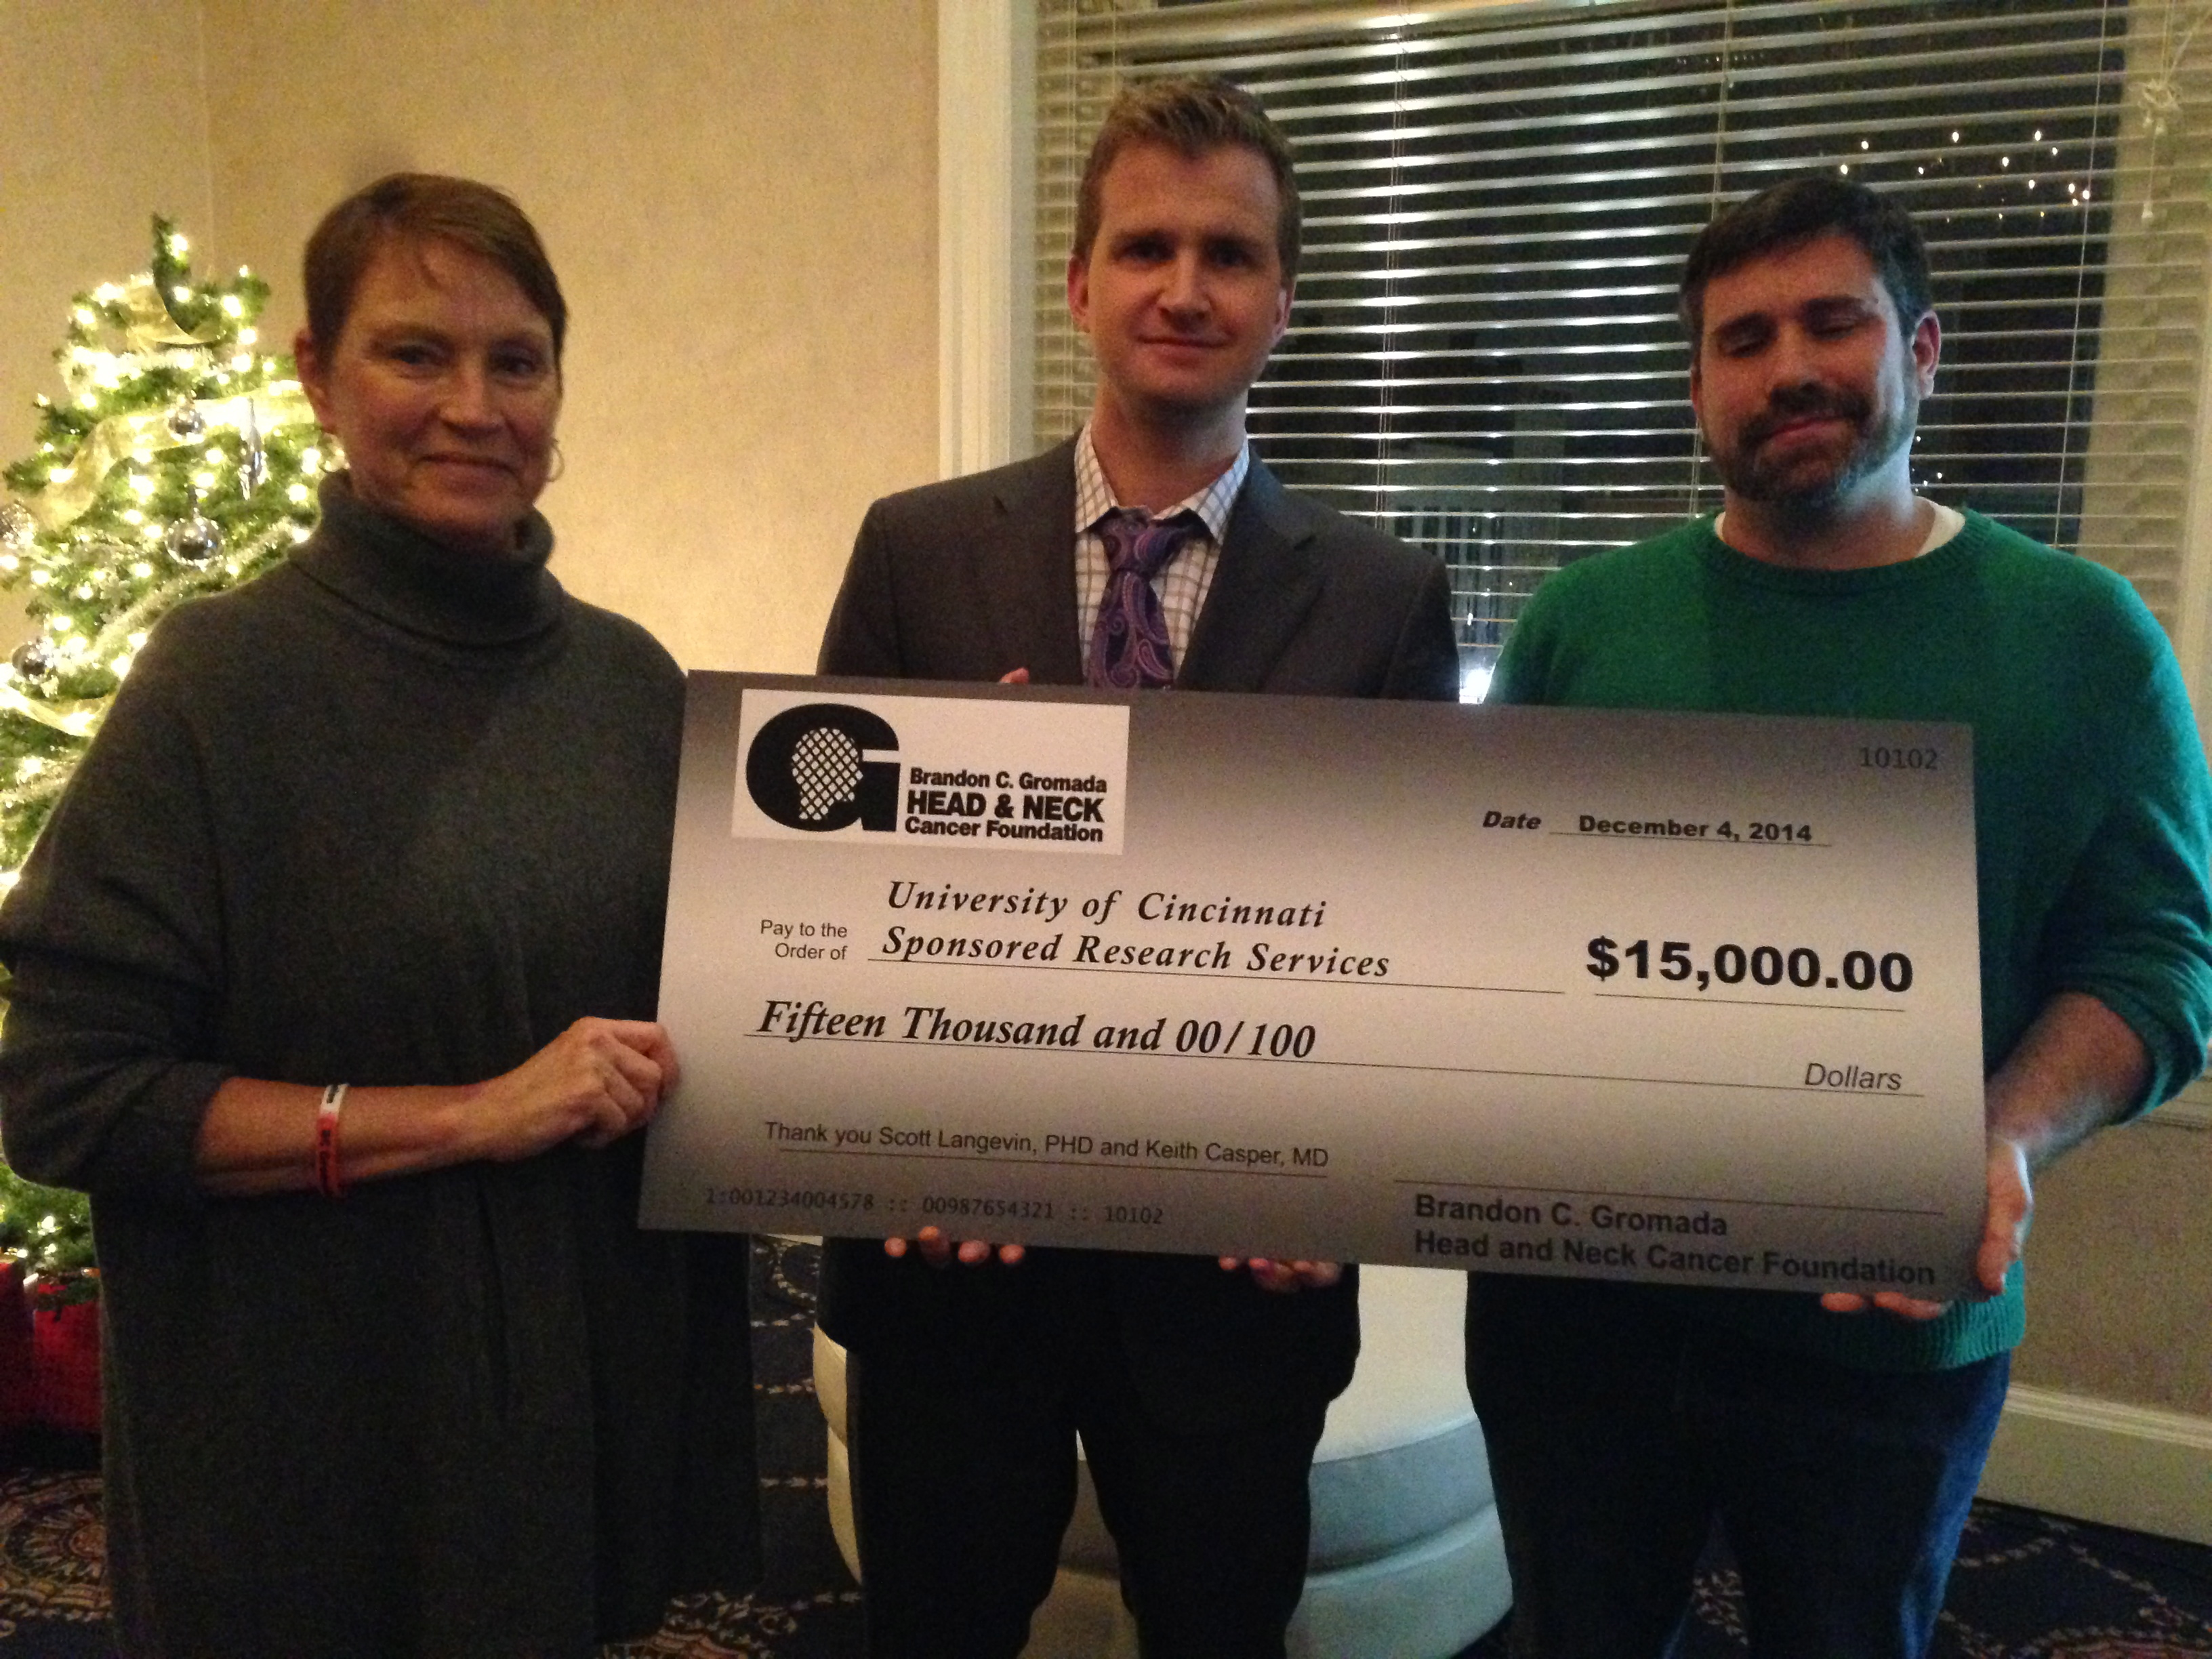 Ceremonial Grant Award Check Presented to UC Researchers